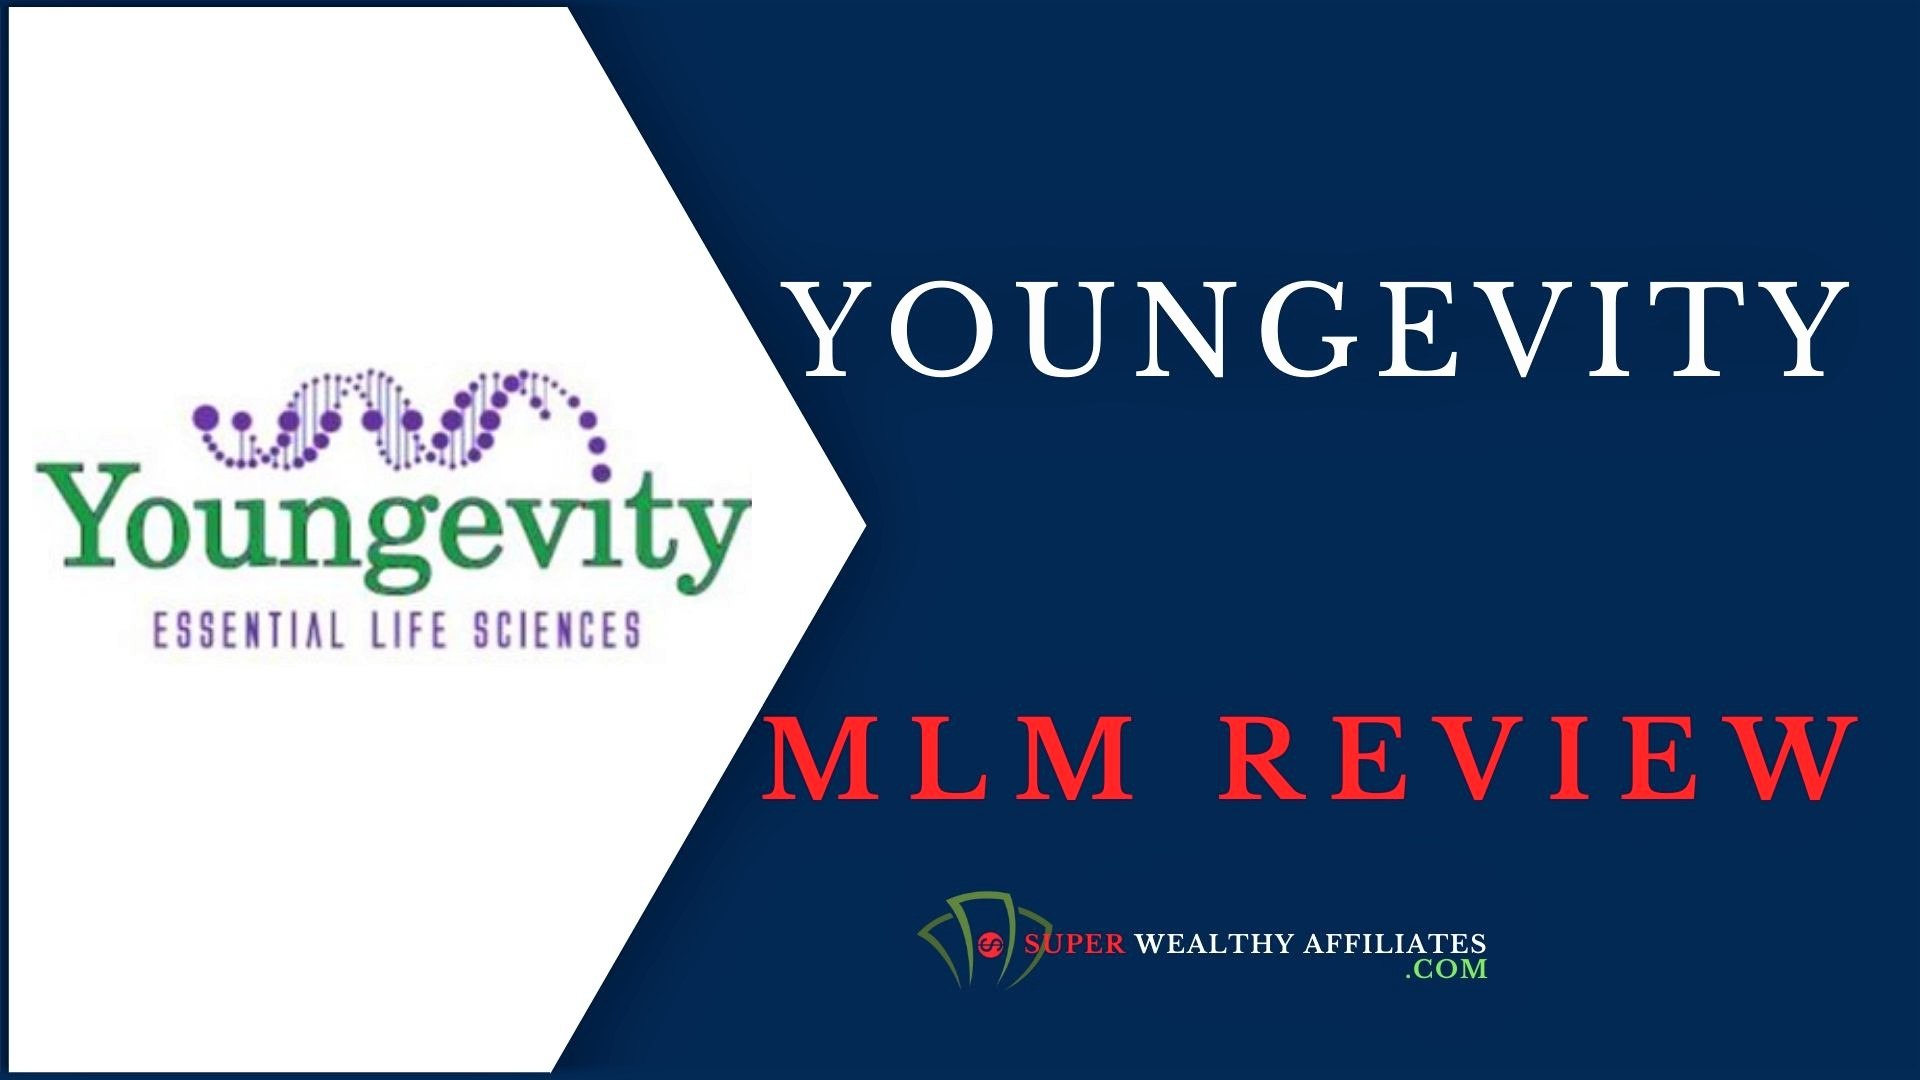 Super-Wealthy-Affiliates-Youngevity-Reviewed